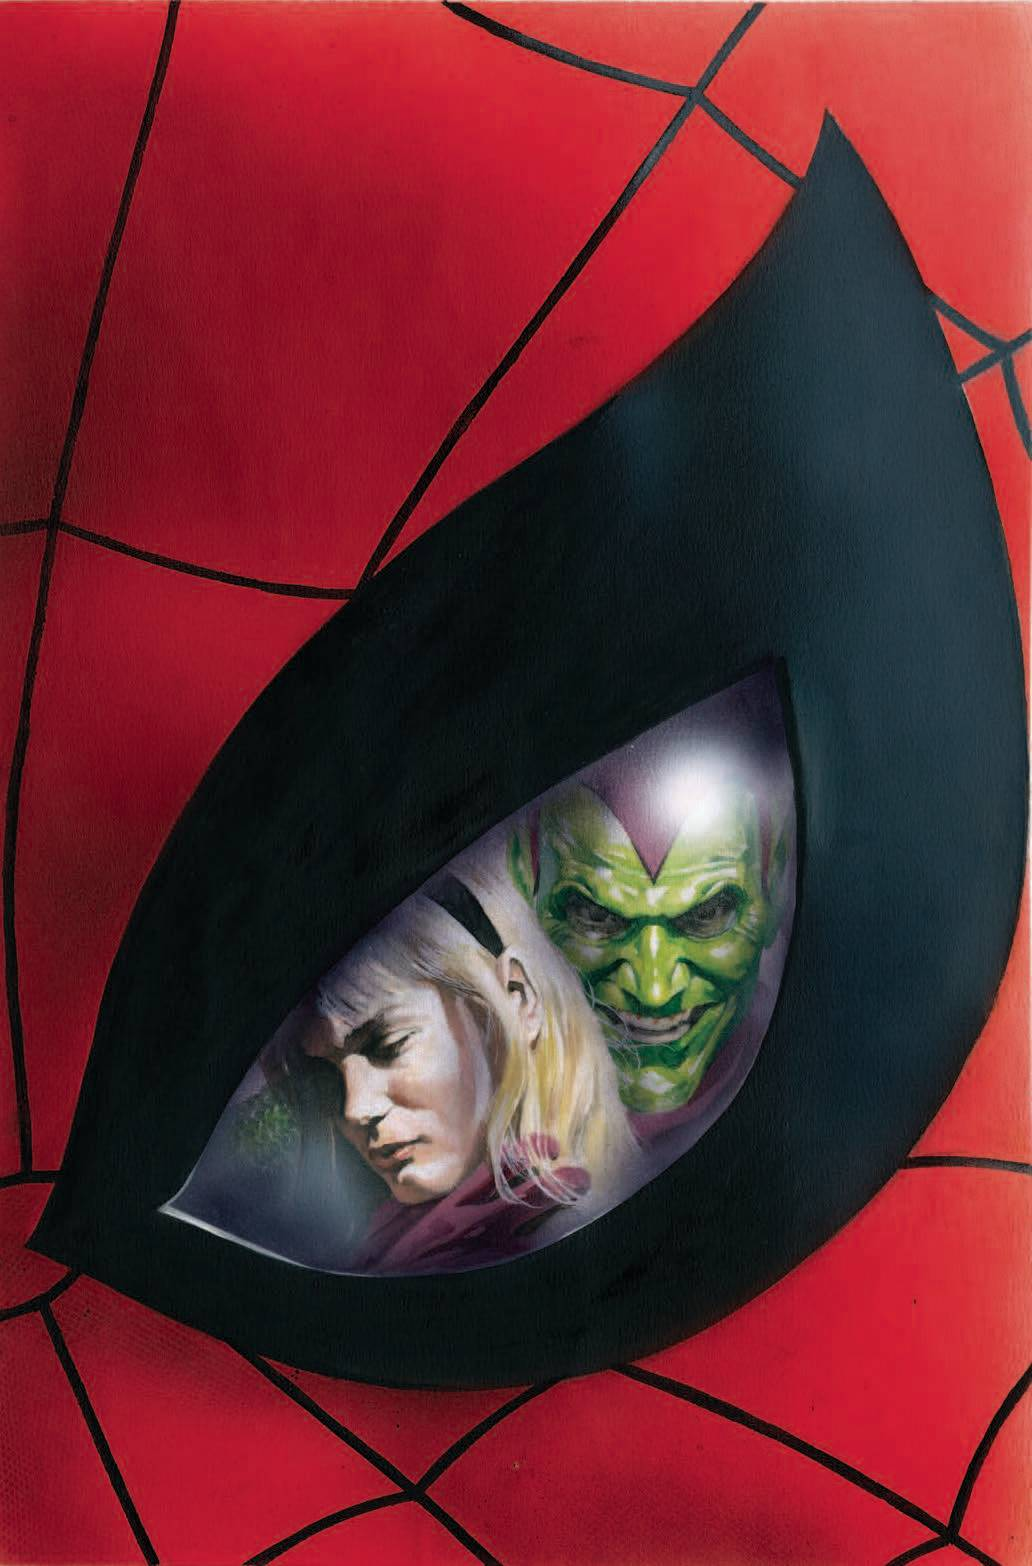 MARVELS ANNOTATED 4 of 4 ALEX ROSS VIRGIN VAR.jpg